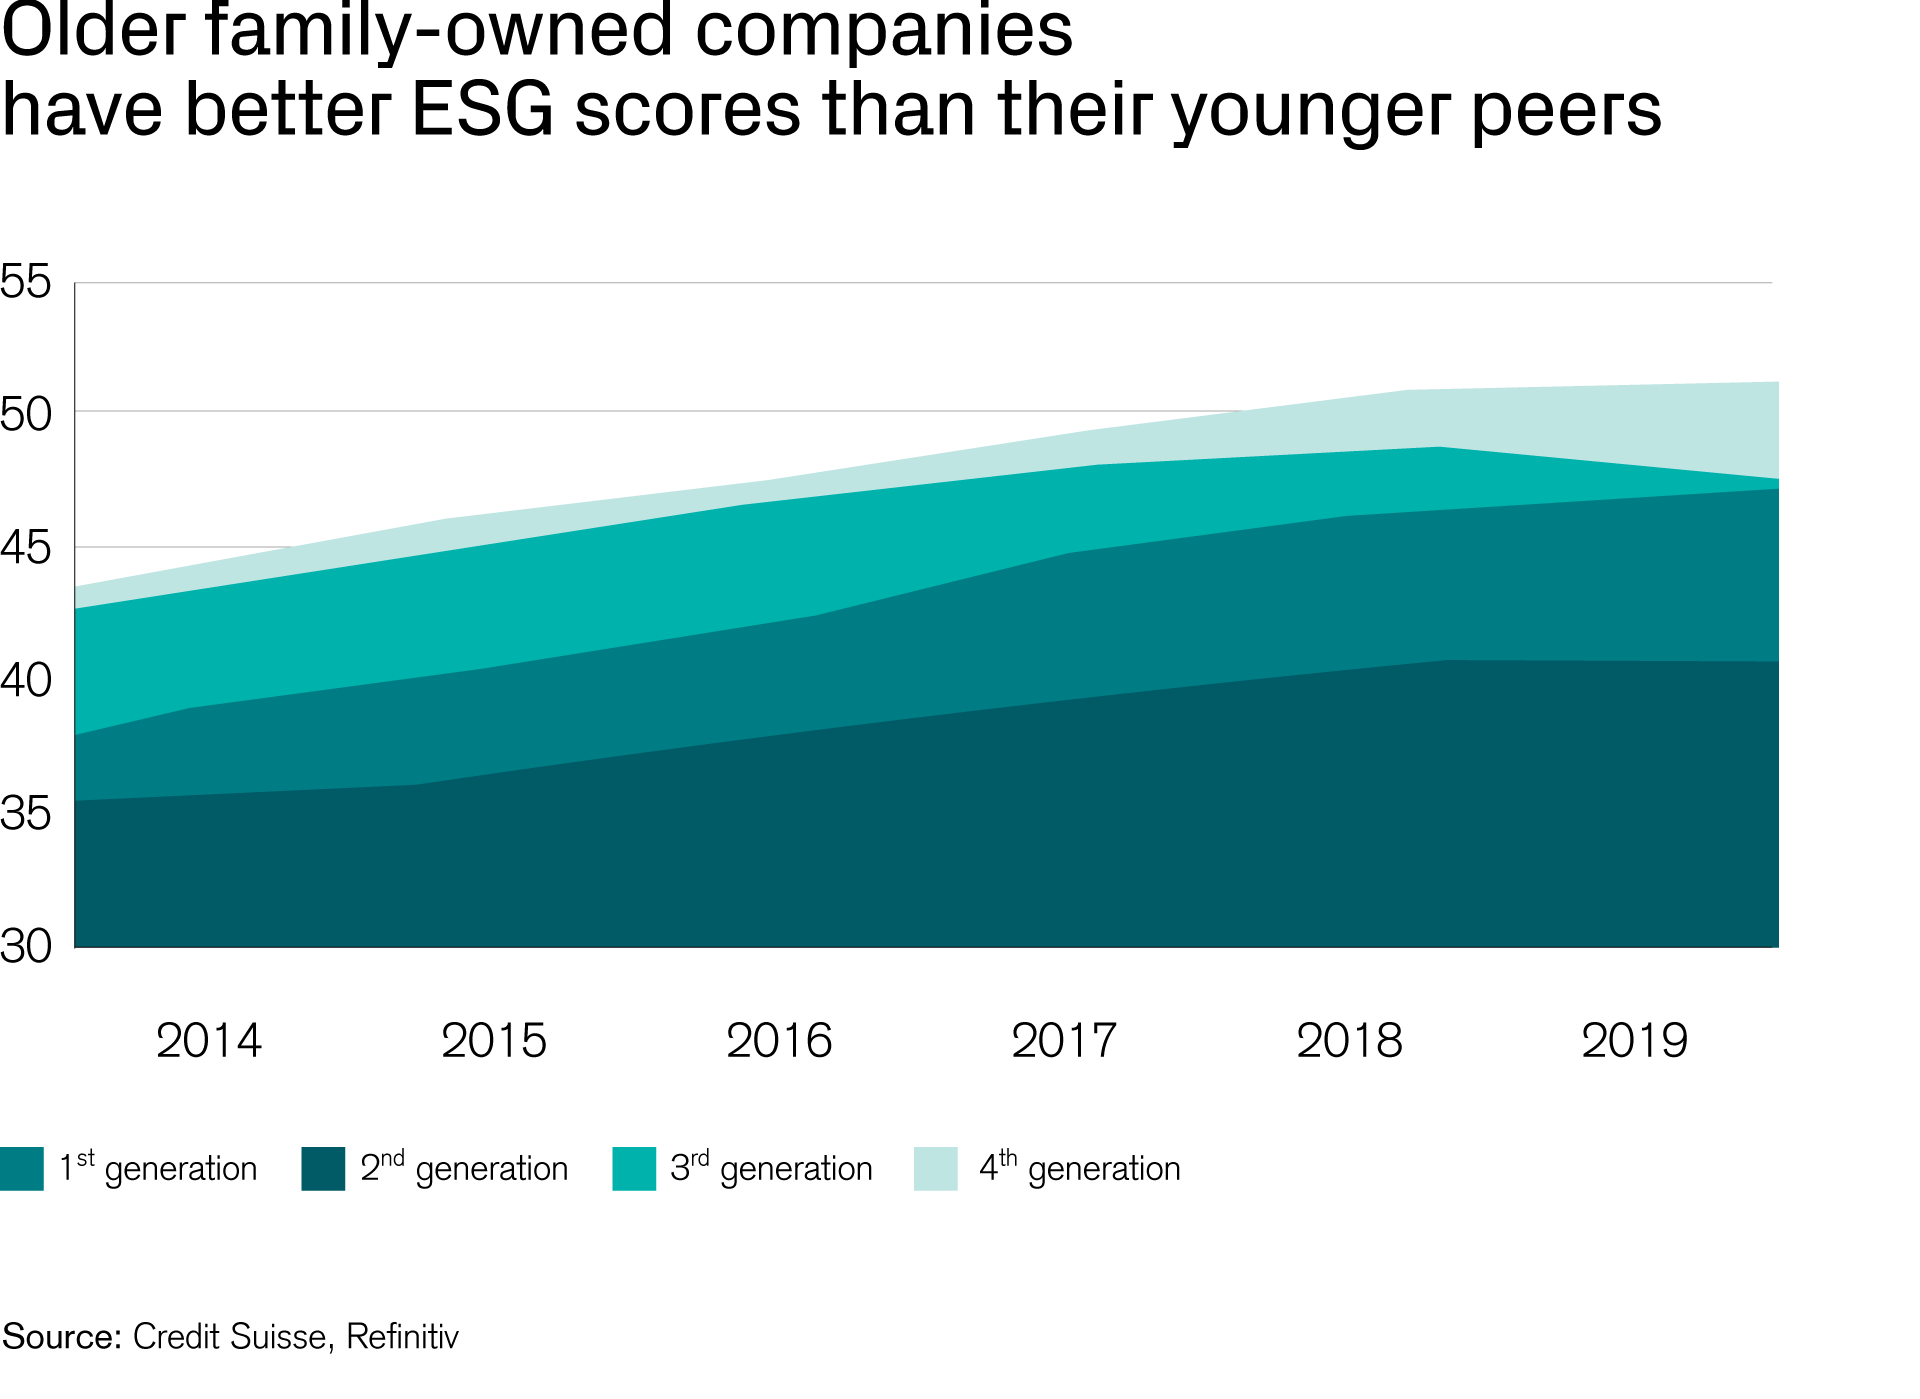 Older family-owned companies have better ESG scores than their younger peers